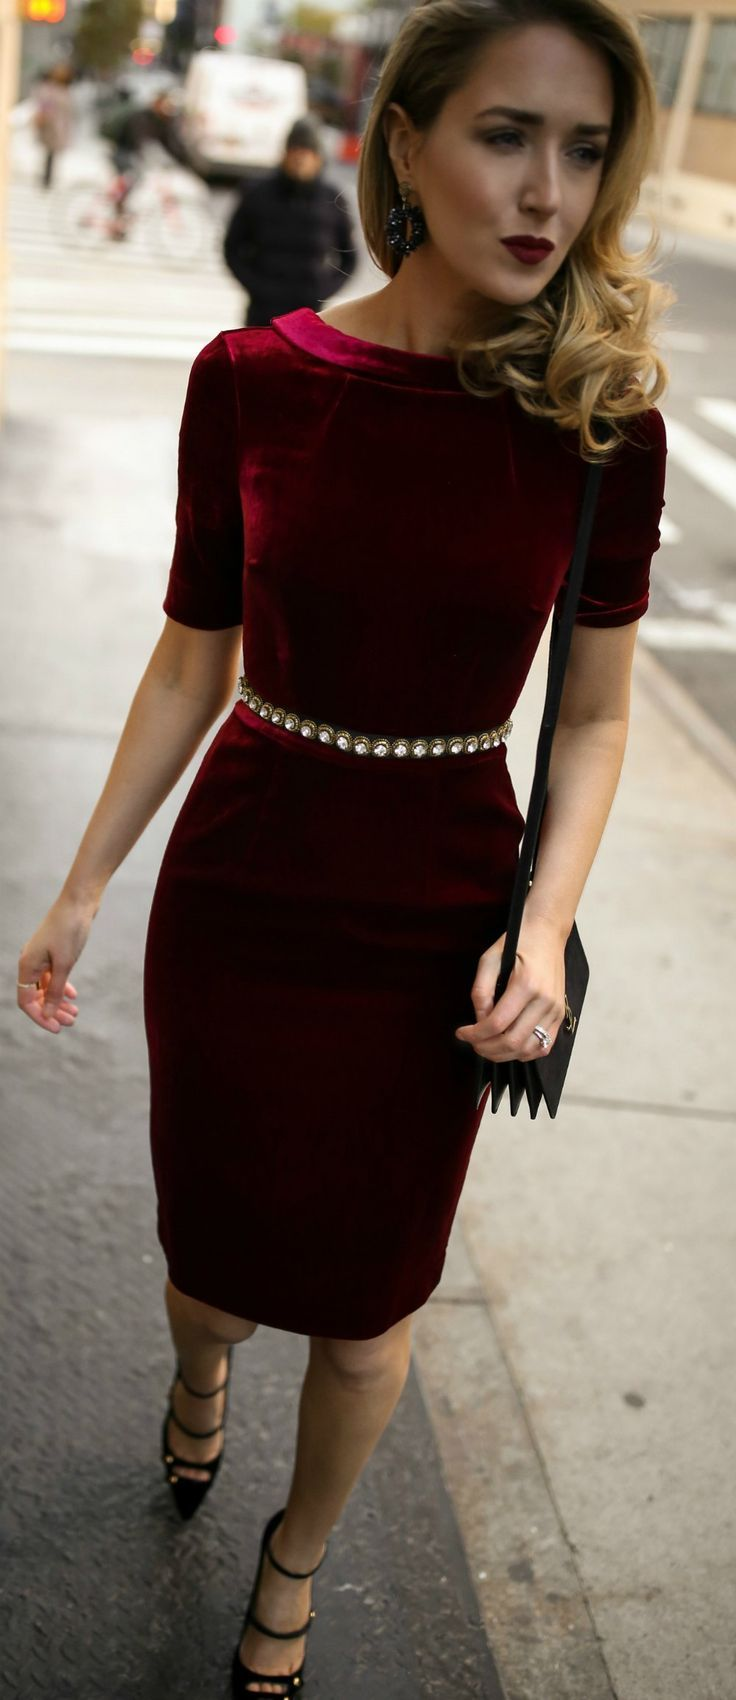 Red velvet sheath dress, embellished black waist belt, black strappy Mary Jane pumps, black leather cross body bag, statement earrings and a dark red lip {Holiday style, Christmas party, what to wear to an office holiday party, office holiday, cocktail at